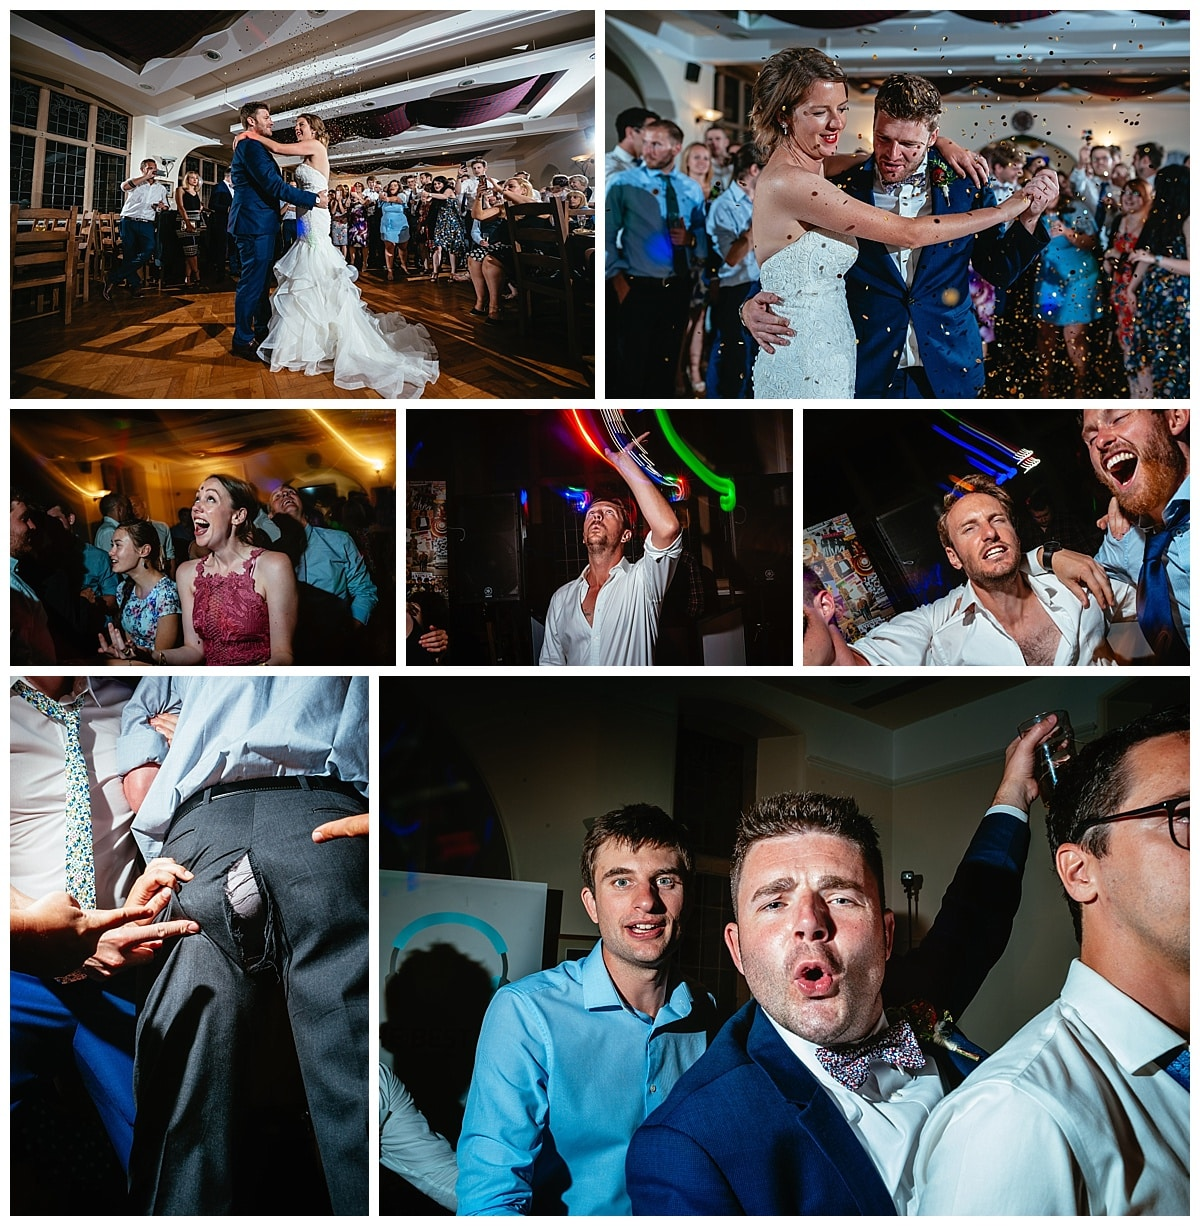 Alternative Wedding Photography - Harriet & Joe - Derbyshire Fun Wedding